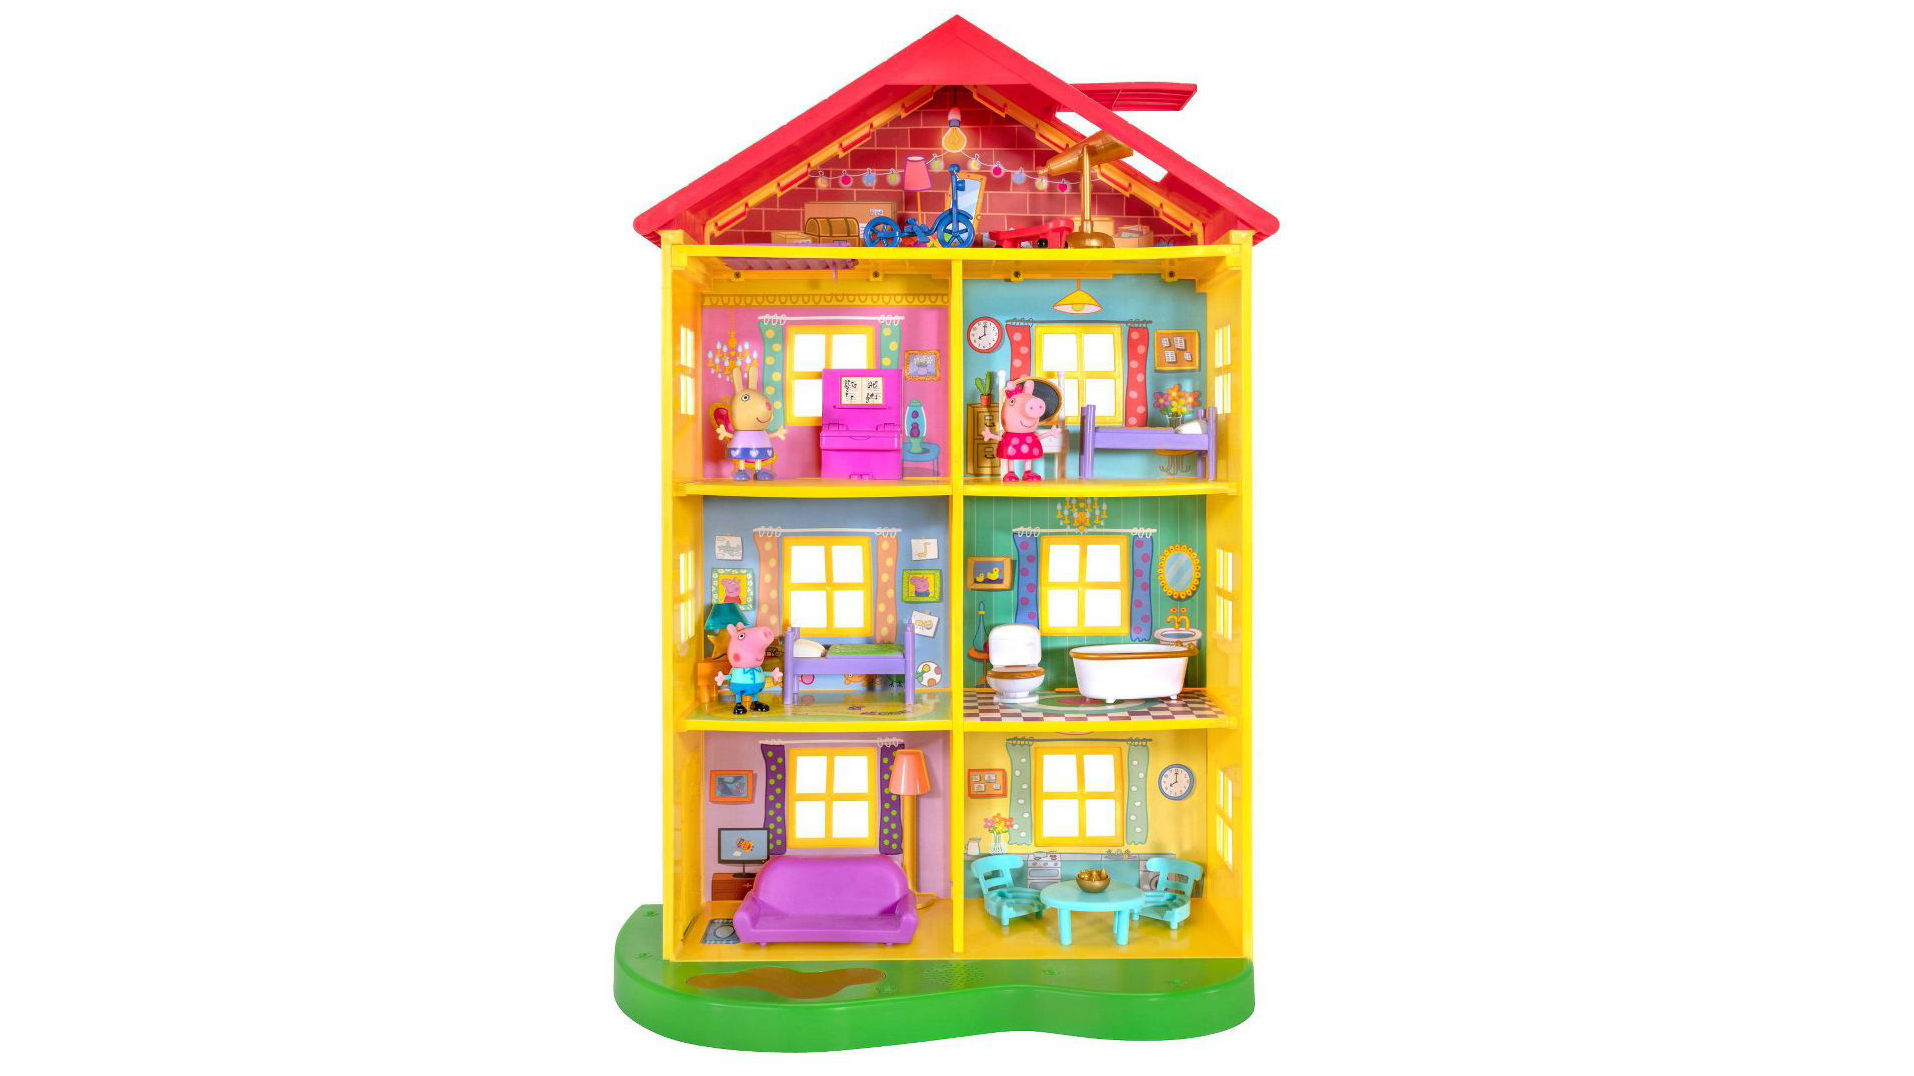 The 30 best gifts and toys for 2-year-olds